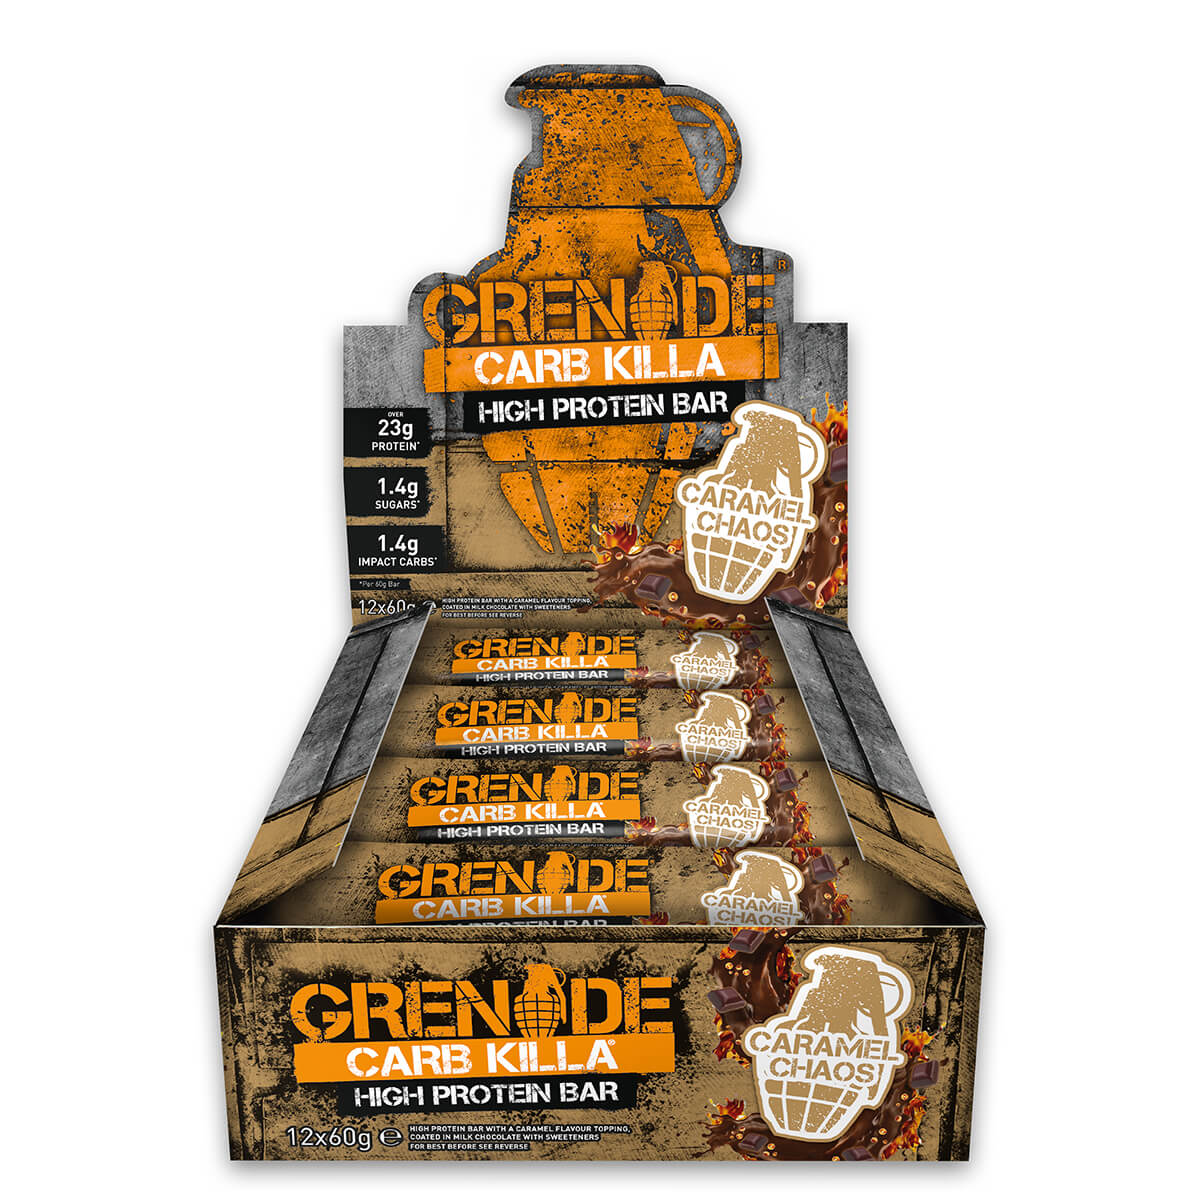 Grenade Carb Killa (12 x 60g) White Chocolate Cookie